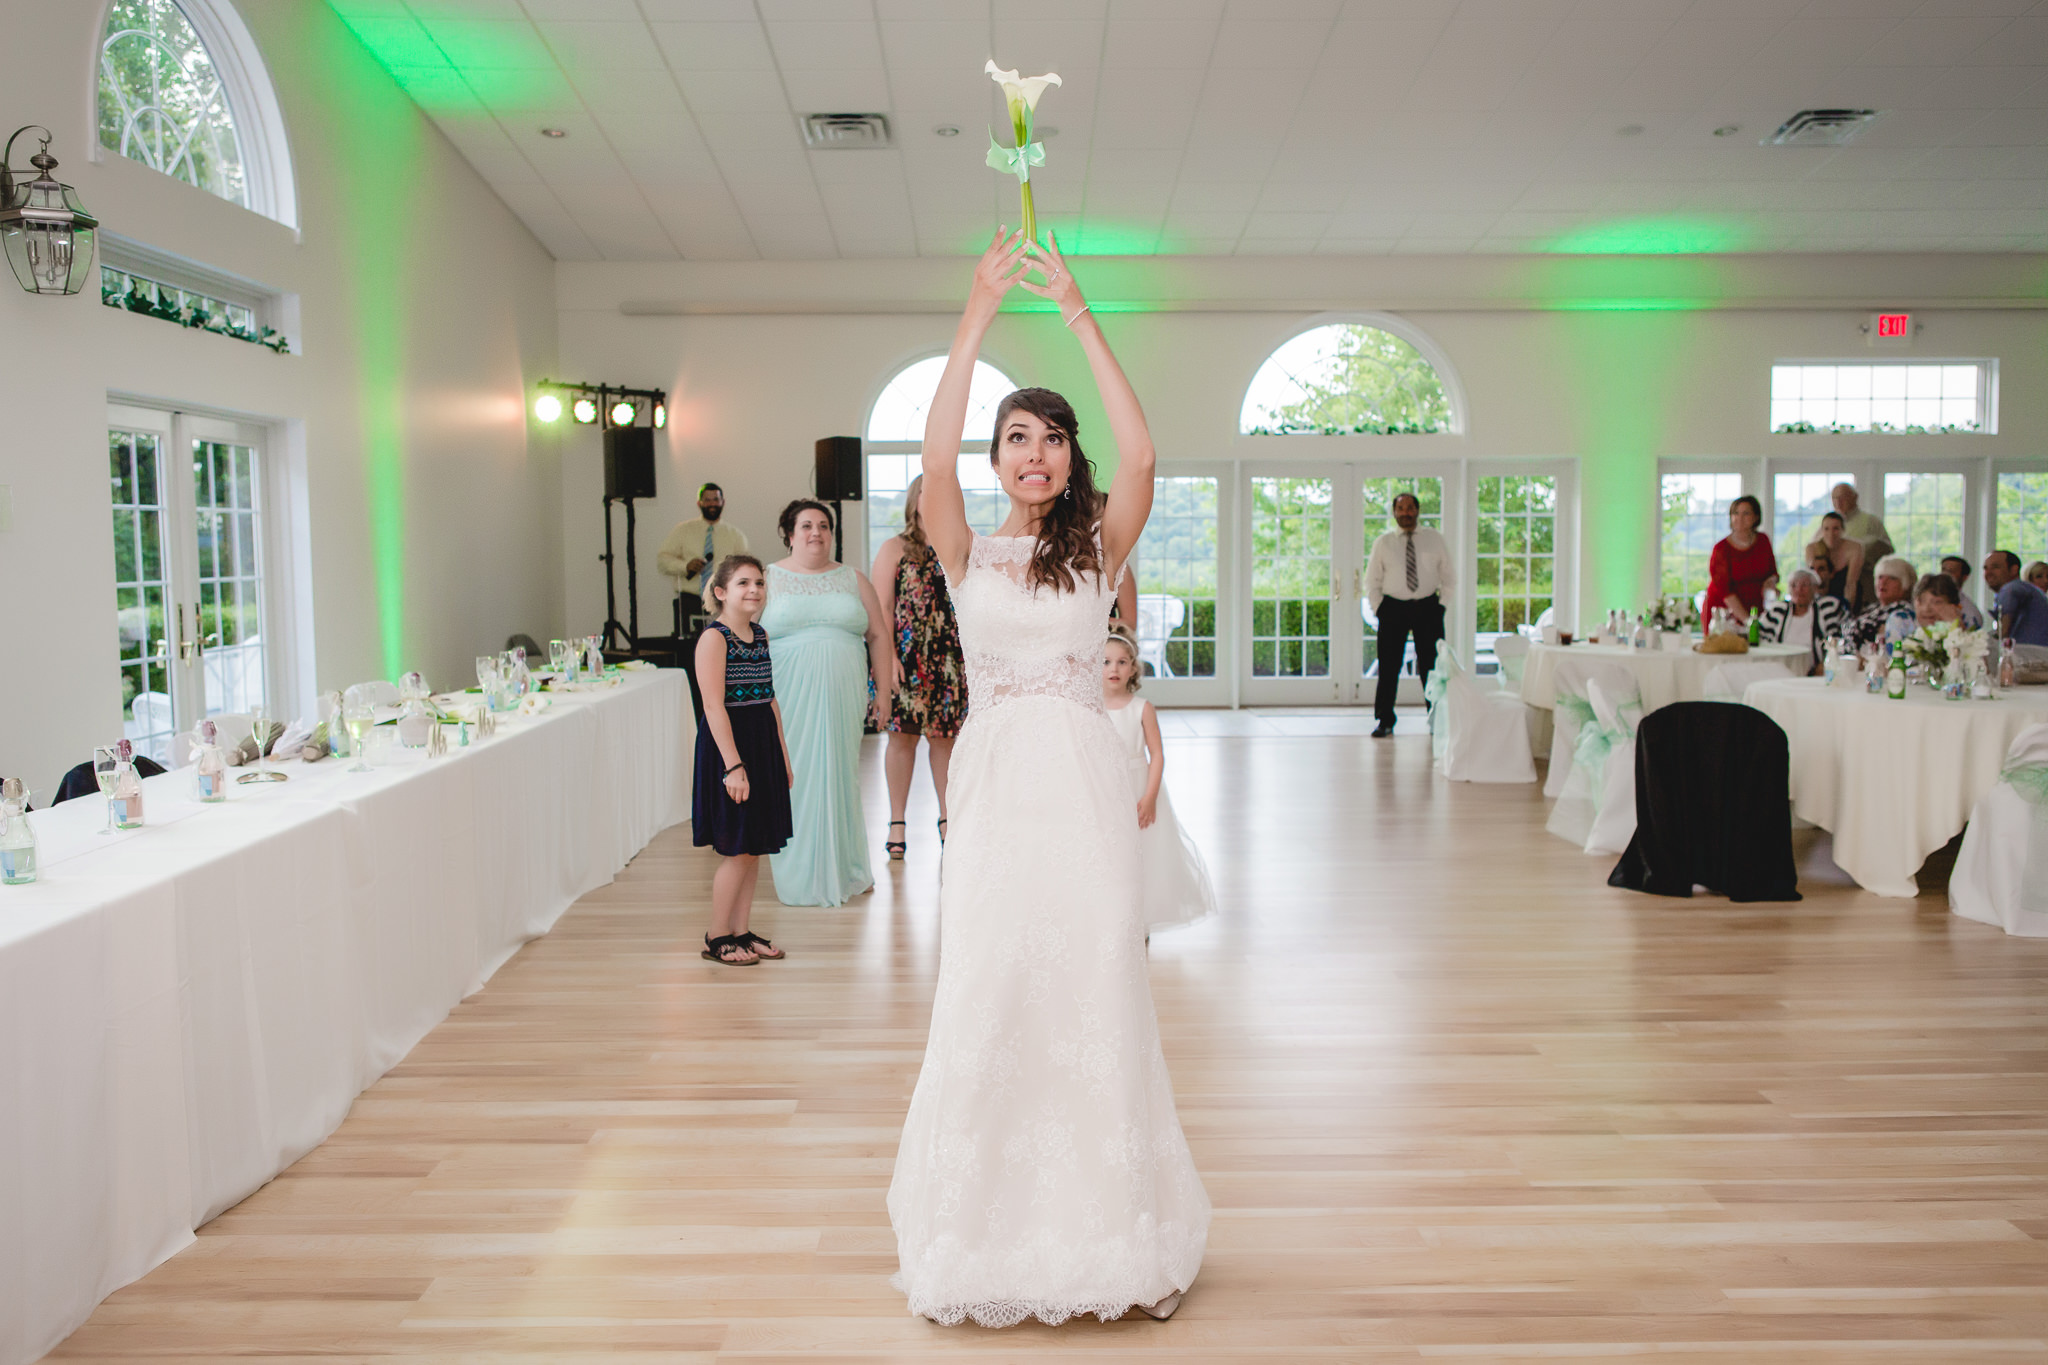 Bride tosses her bouquet to single ladies at her wedding reception